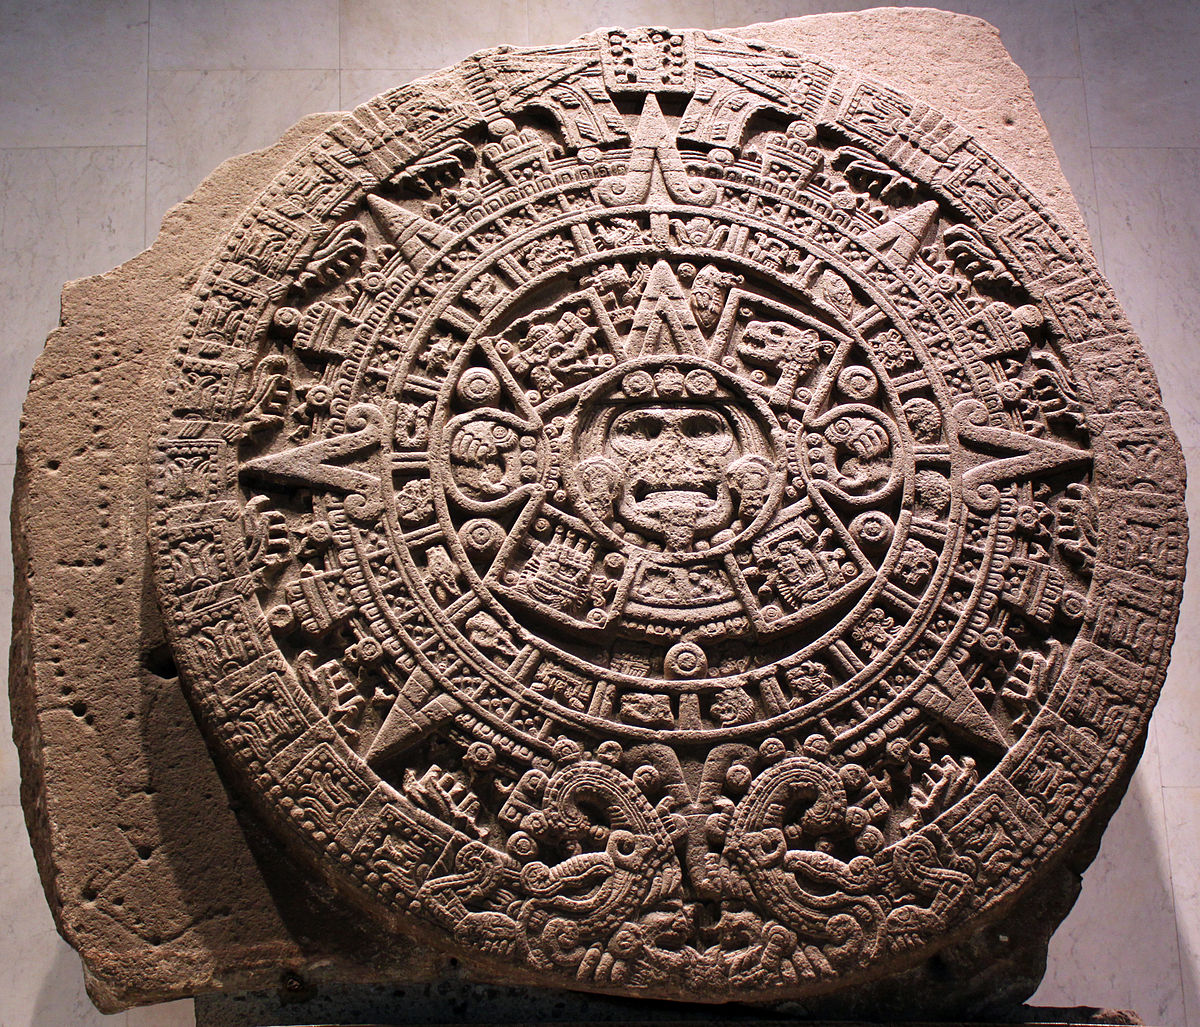 https://upload.wikimedia.org/wikipedia/commons/thumb/b/b1/1479_Stein_der_f%C3%BCnften_Sonne%2C_sog._Aztekenkalender%2C_Ollin_Tonatiuh_anagoria.JPG/1200px-1479_Stein_der_f%C3%BCnften_Sonne%2C_sog._Aztekenkalender%2C_Ollin_Tonatiuh_anagoria.JPG